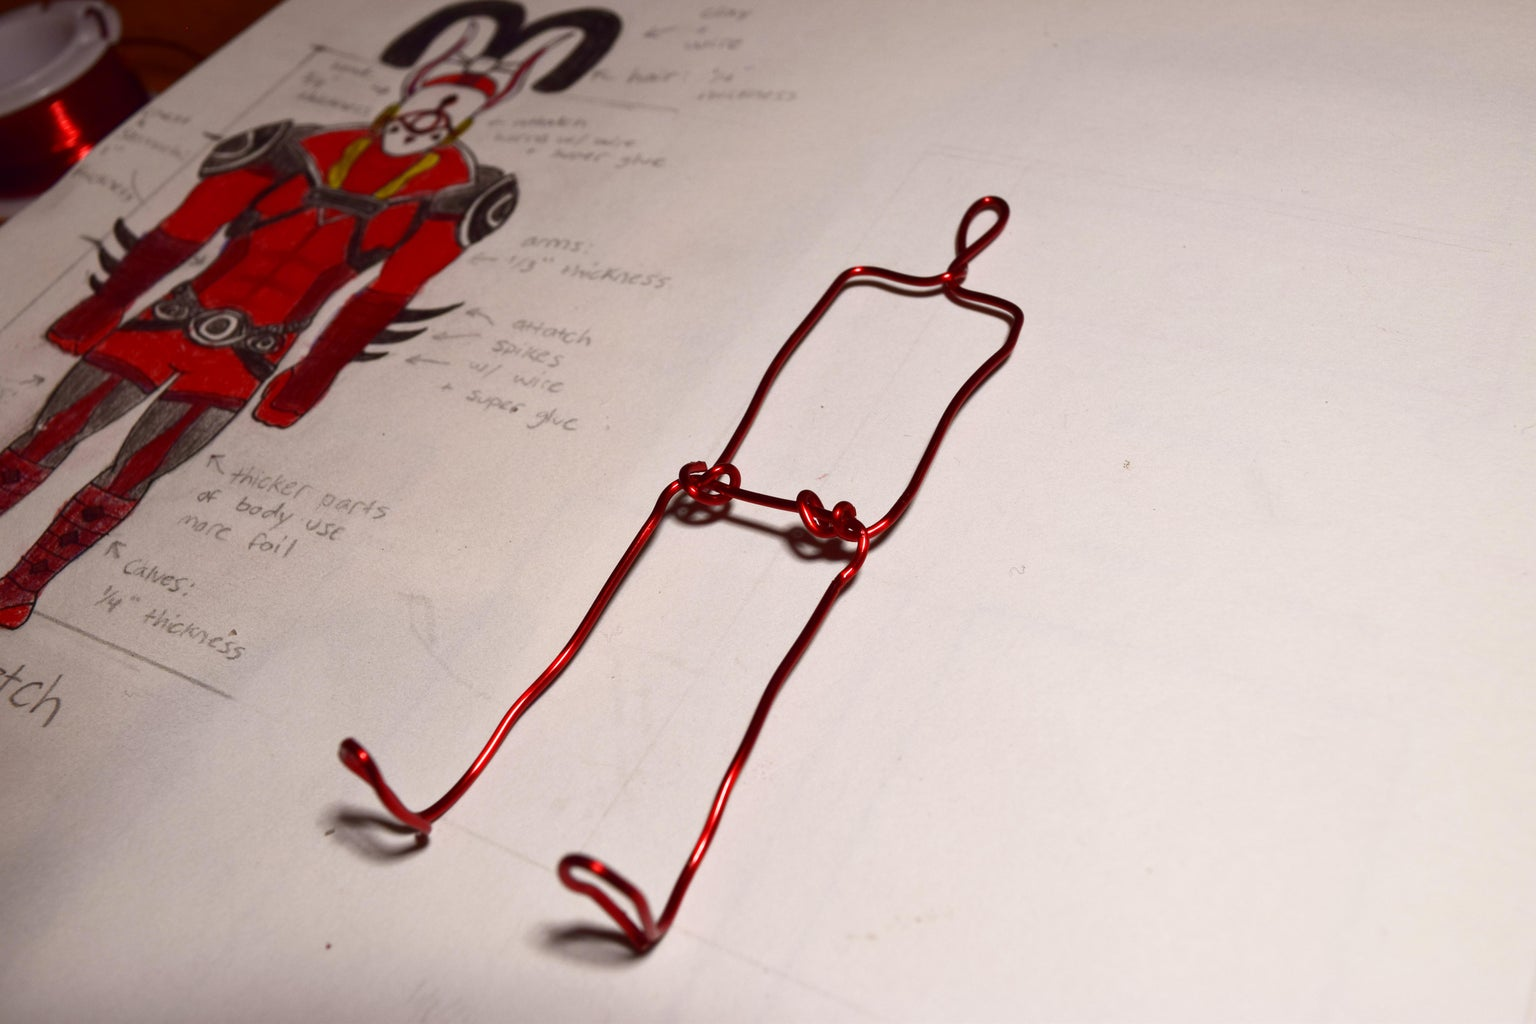 Creating the Armature